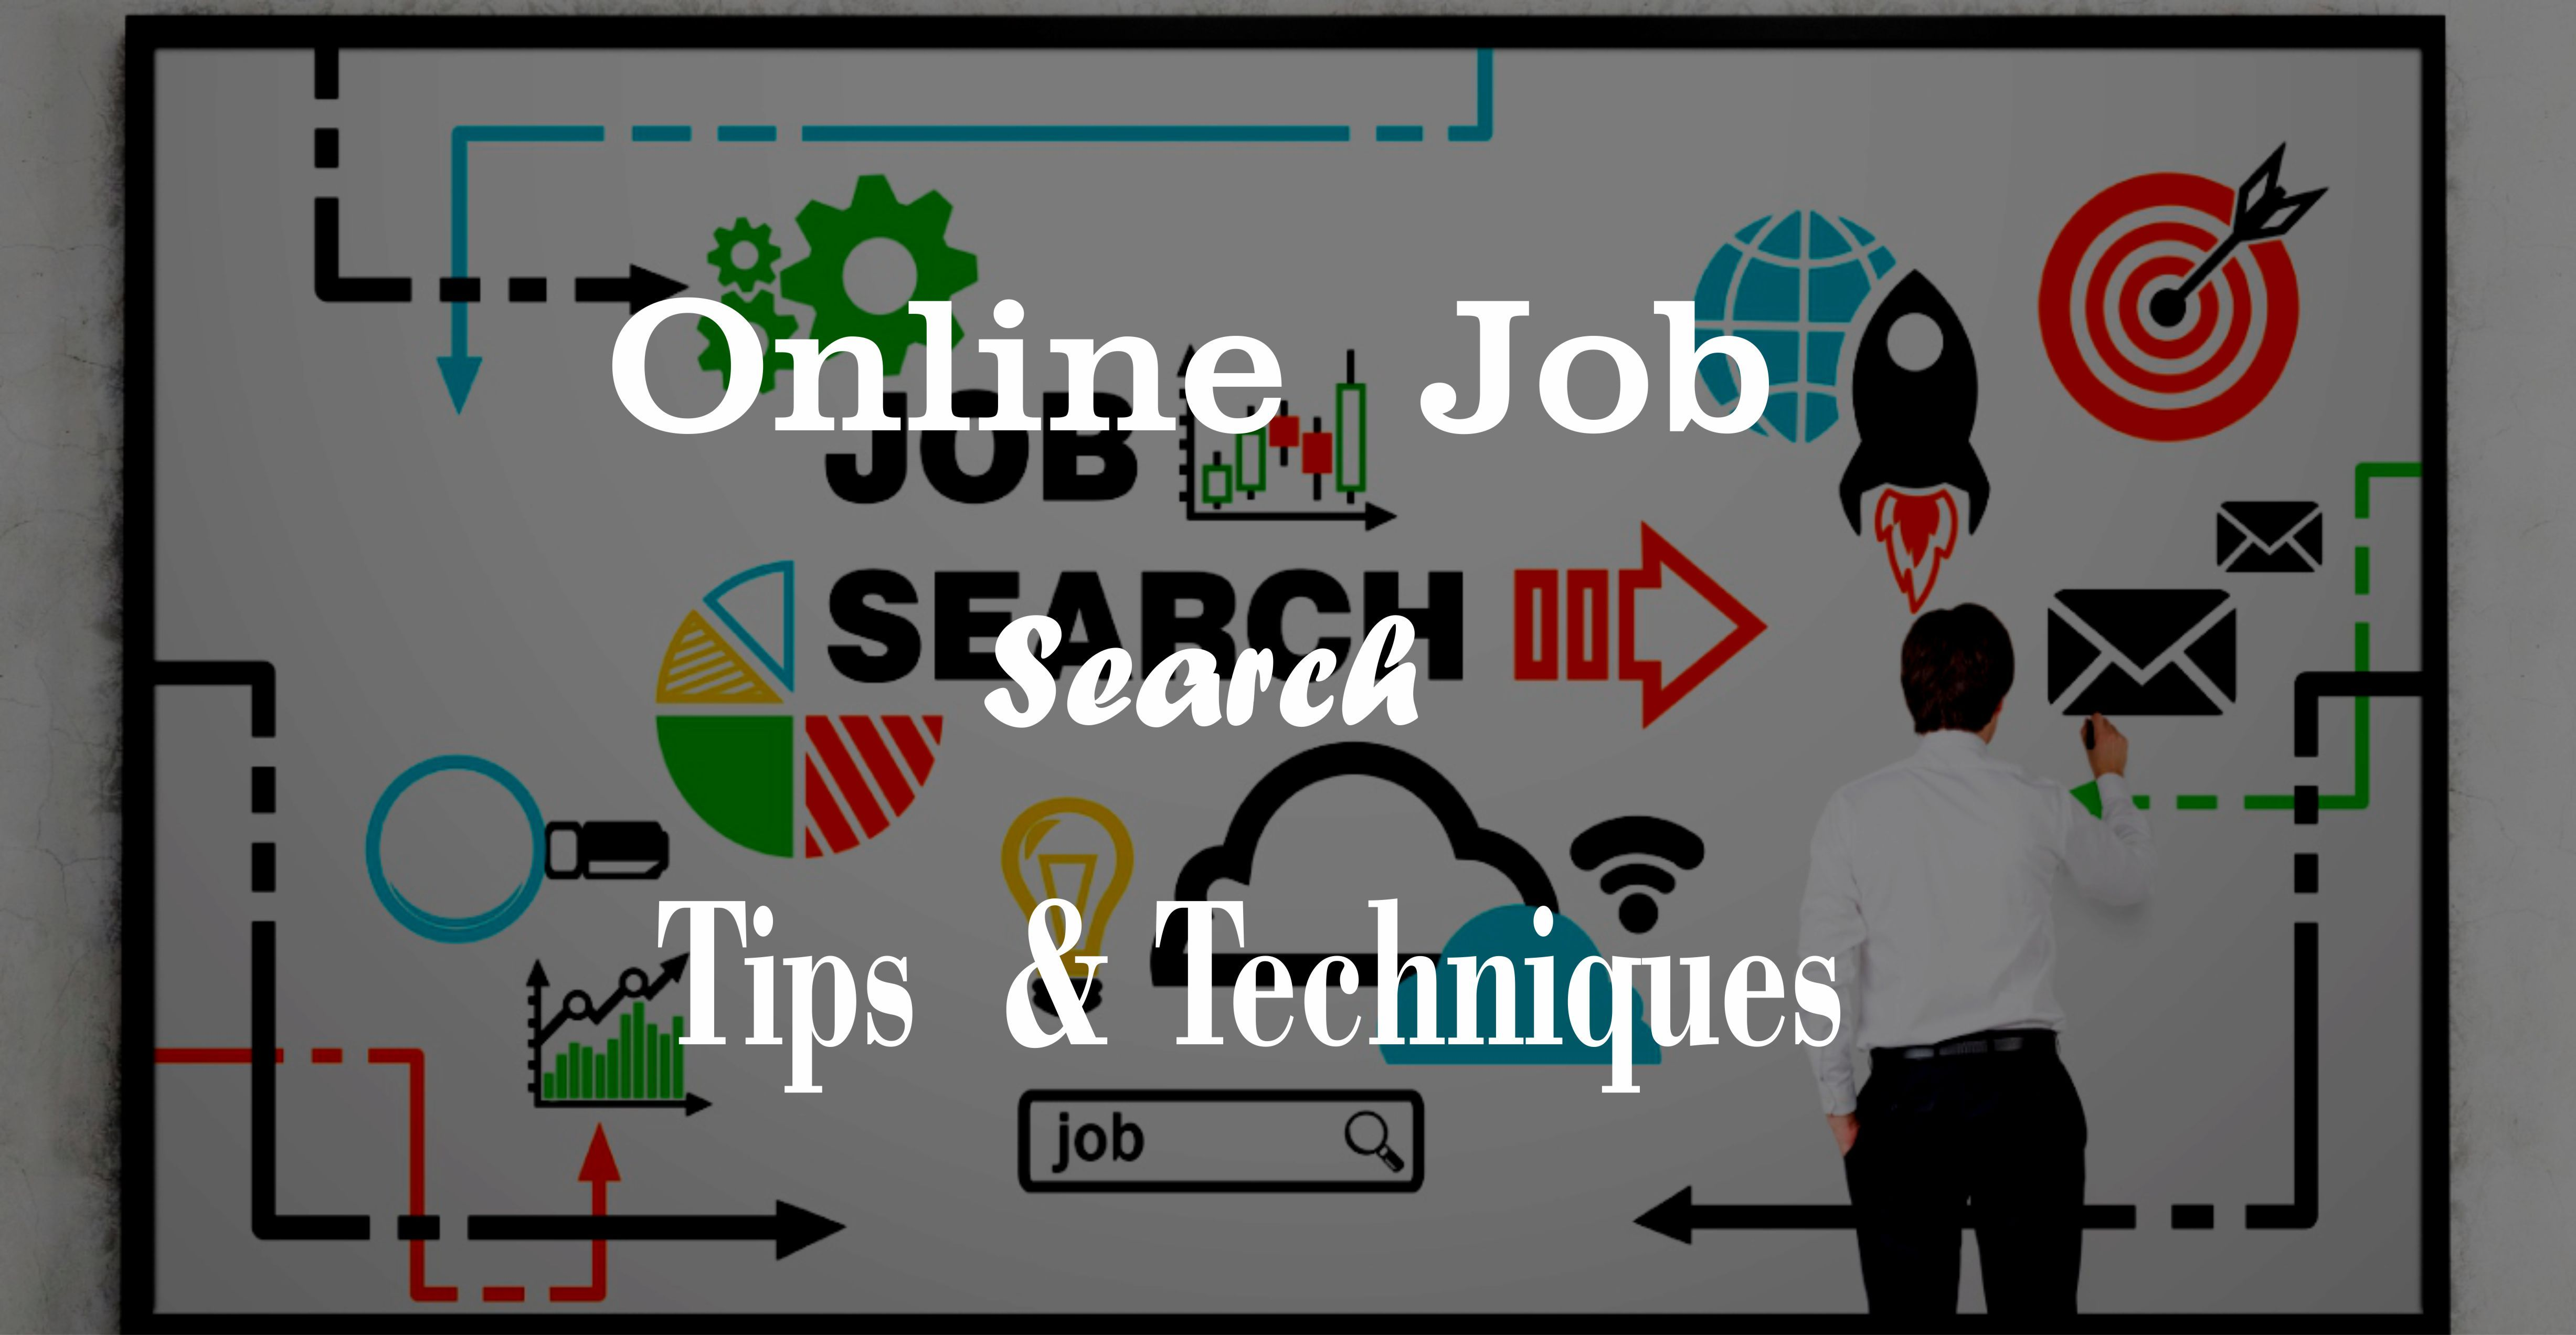 Job Search Skills Job Search Is An Skill Technique Which A